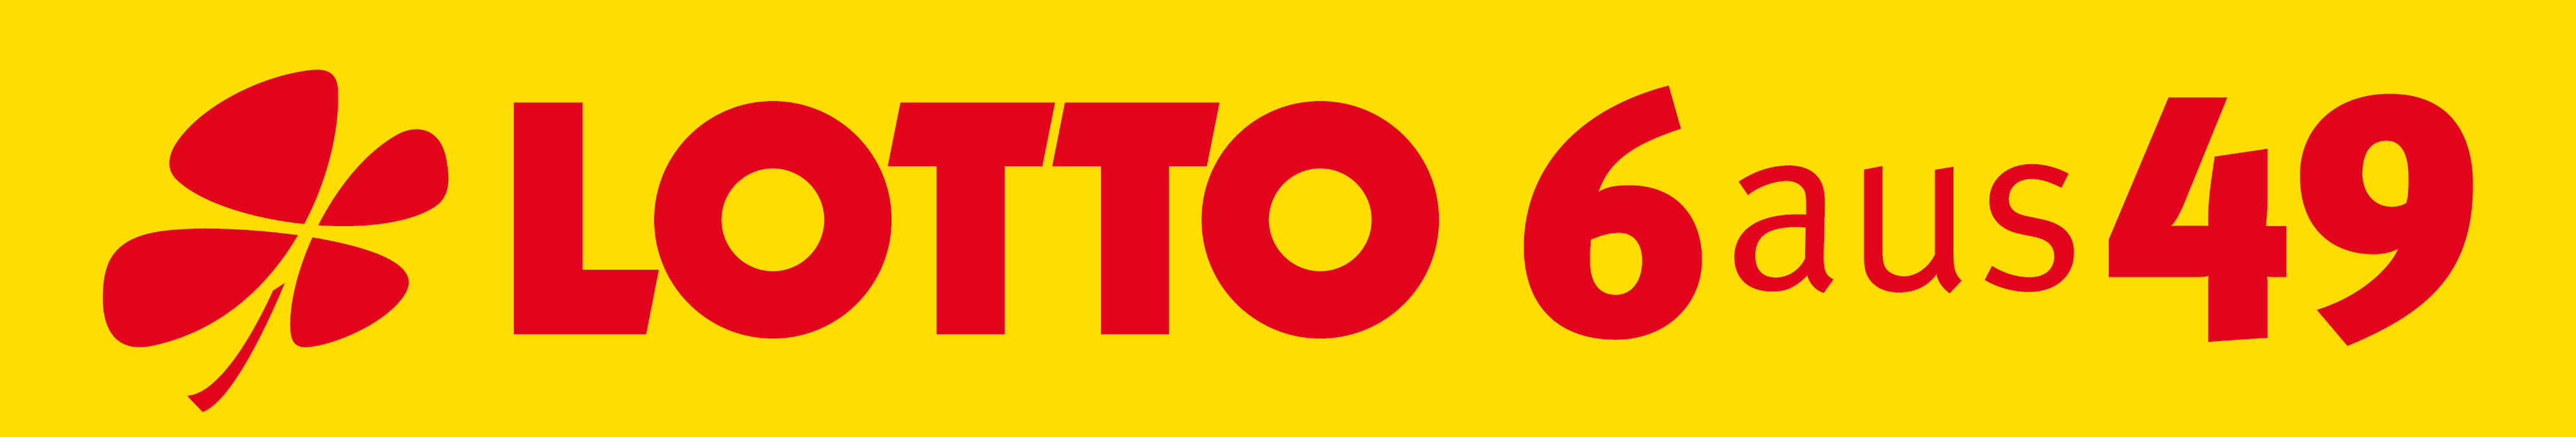 Lotto_LOGO.png